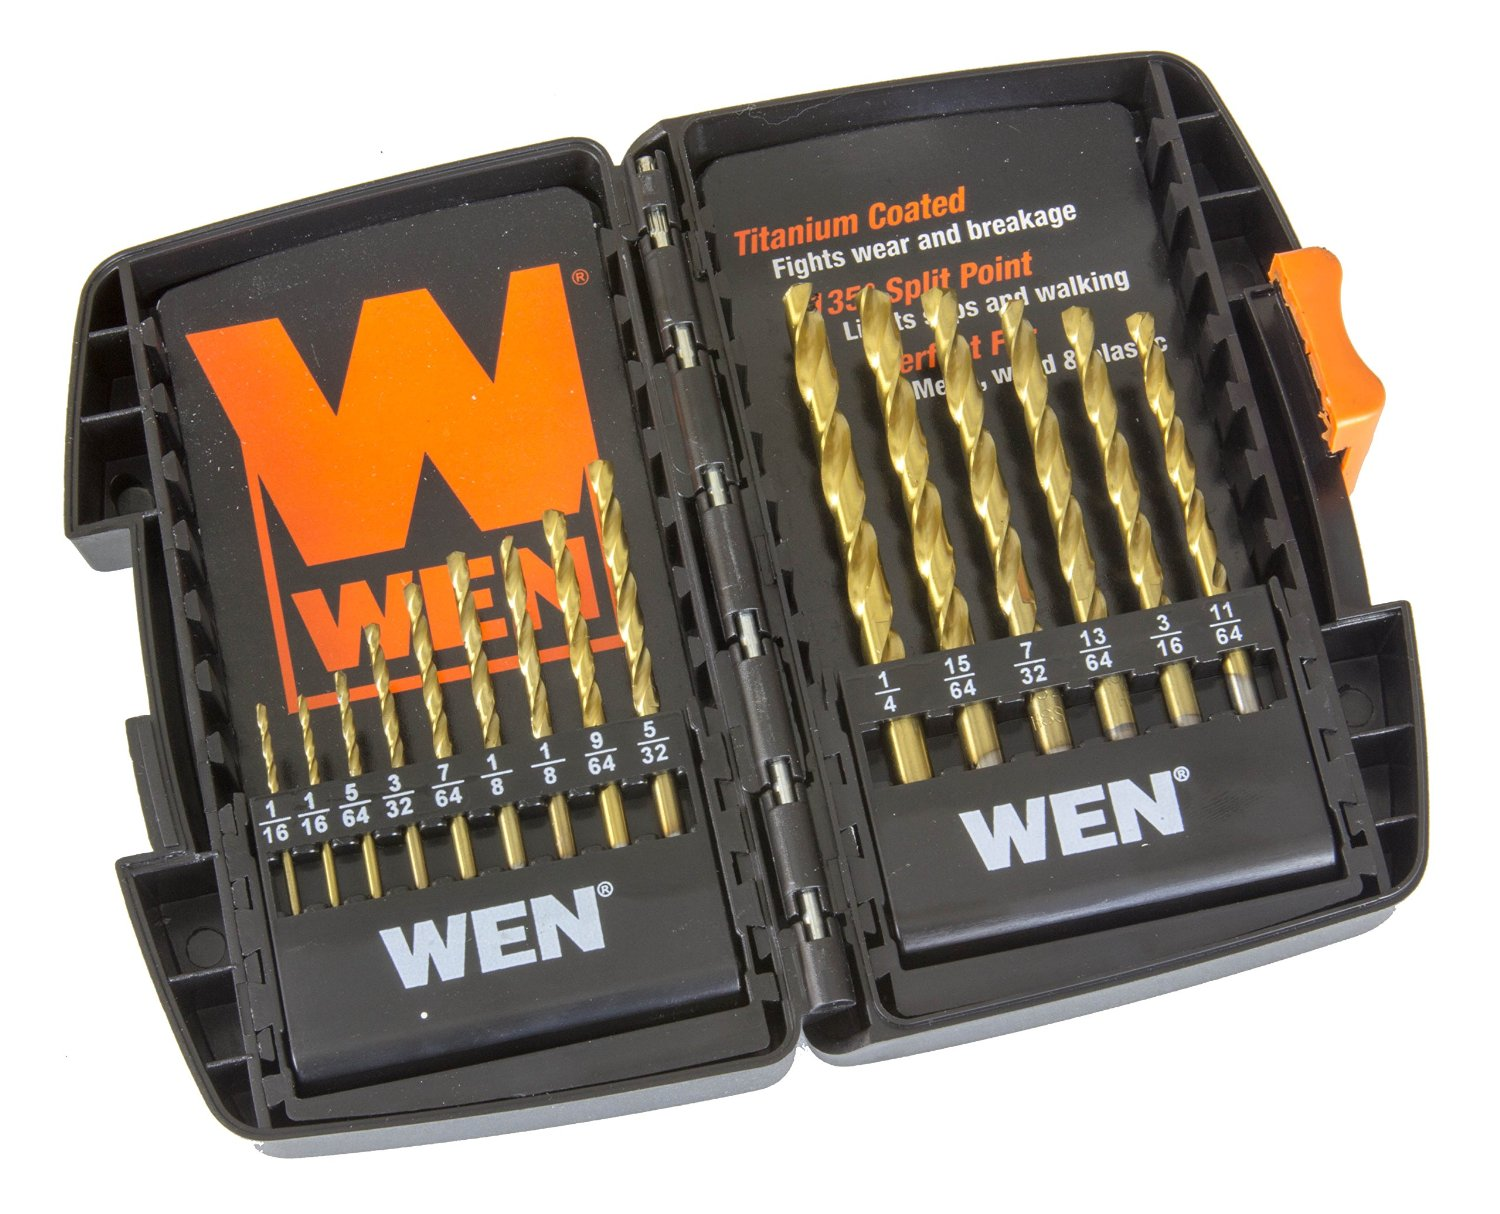 WEN DB15 Titanium-Coated Drill Bit Set 15 Piece